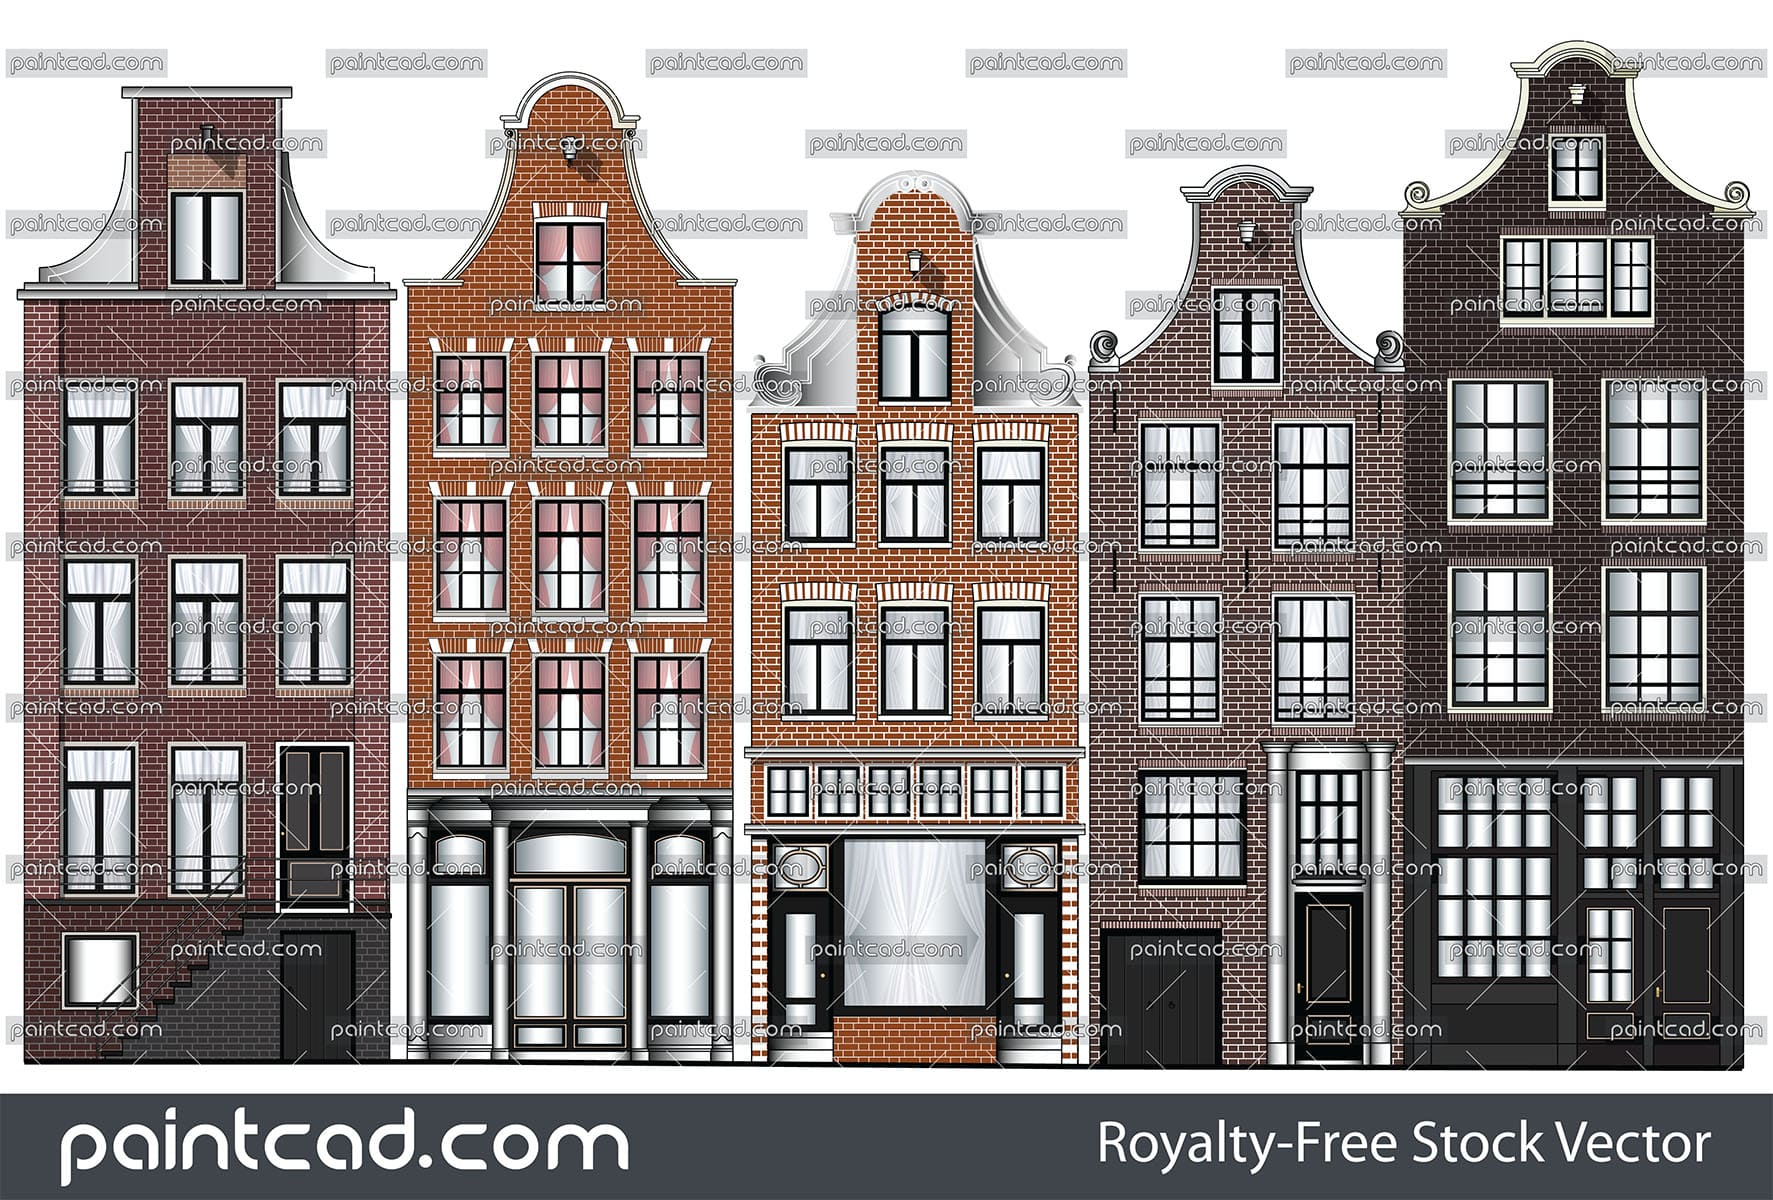 Old Renaissance canal houses from Amsterdam city - vector illustration